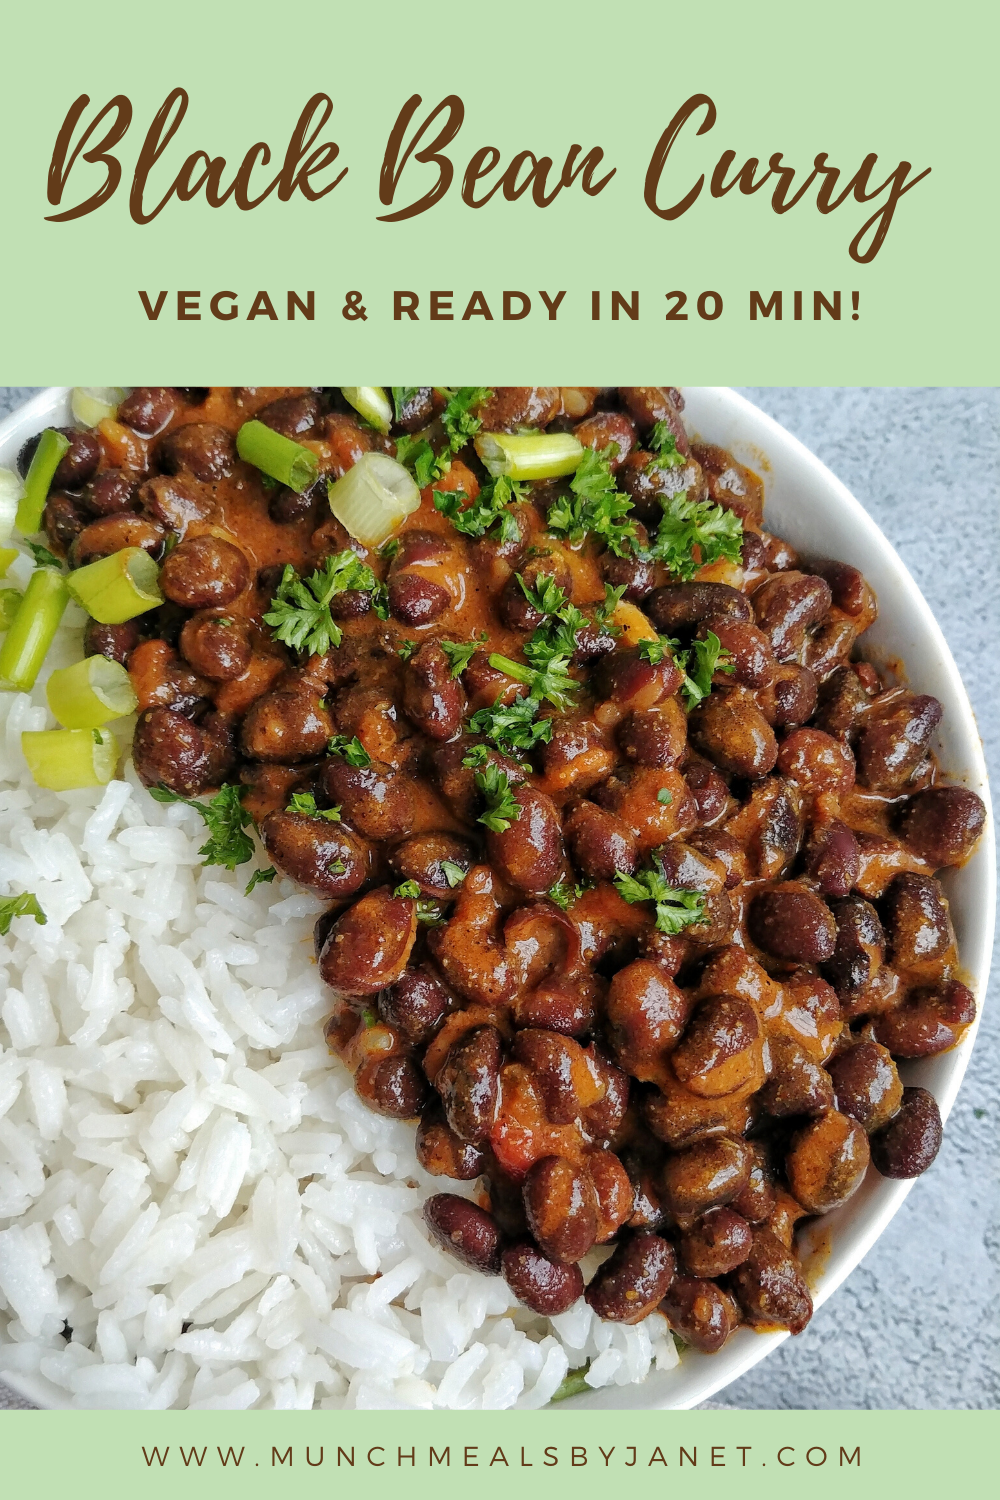 Vegan Black Bean Curry Munchmeals By Janet Recipe Bean Recipes Vegan Black Bean Recipes Beans Curry